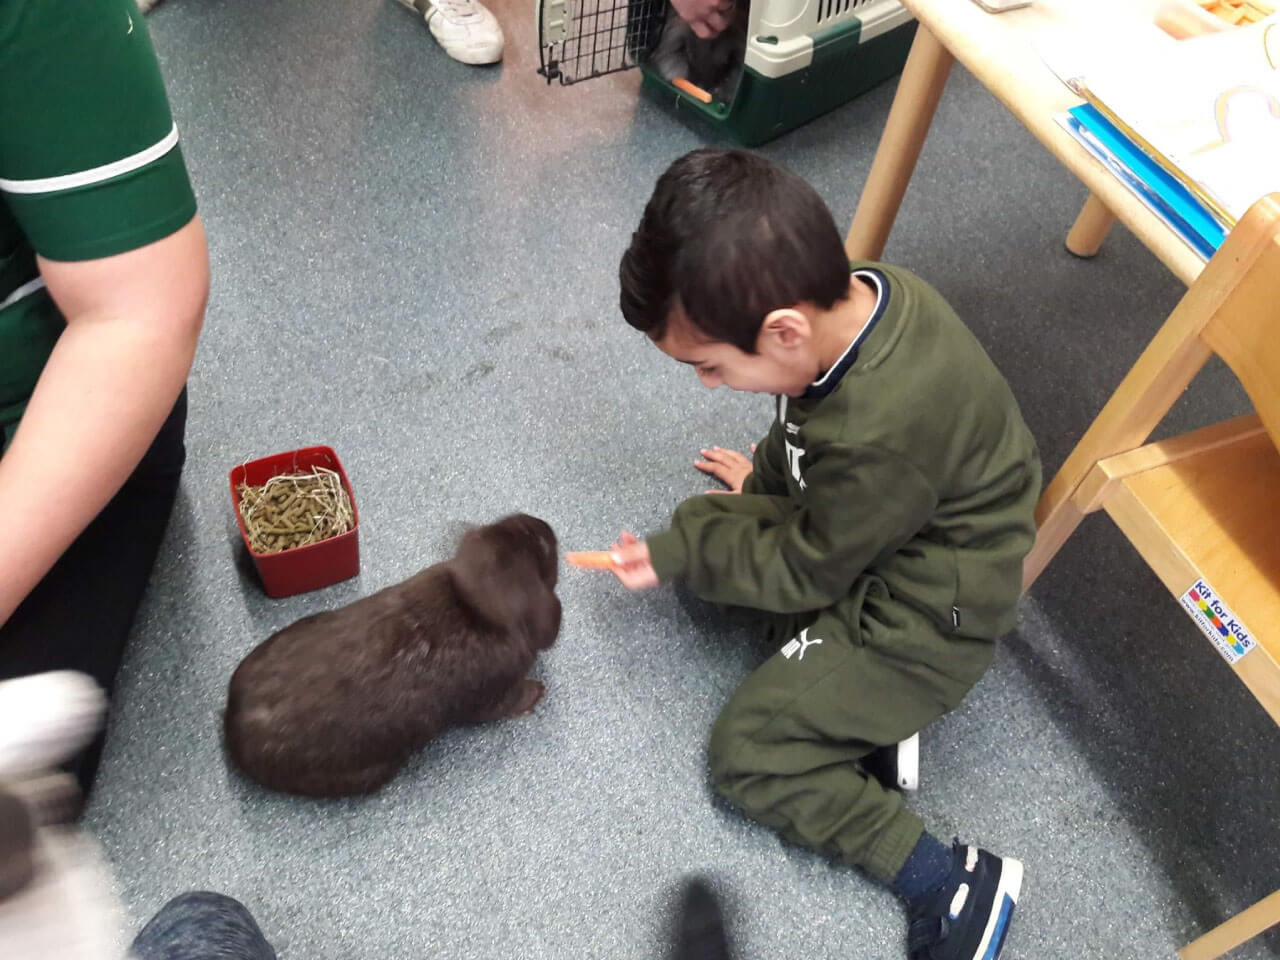 Young child feeding rabbit